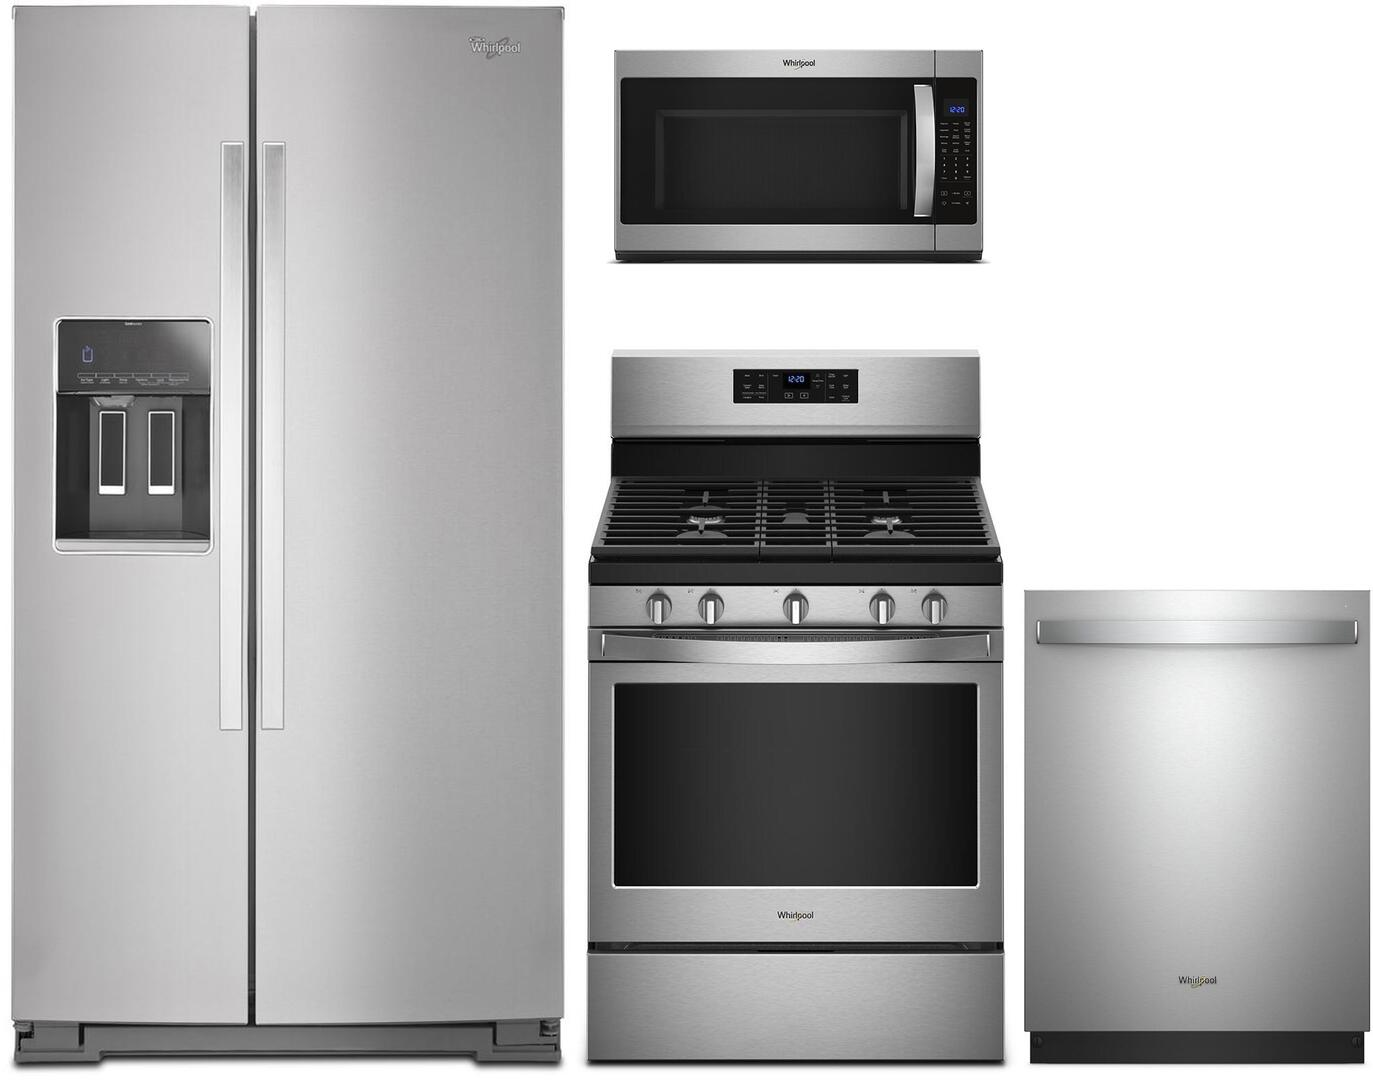 Whirlpool Kitchen Appliances Reviews: Whirlpool 523830 Kitchen Appliance Packages